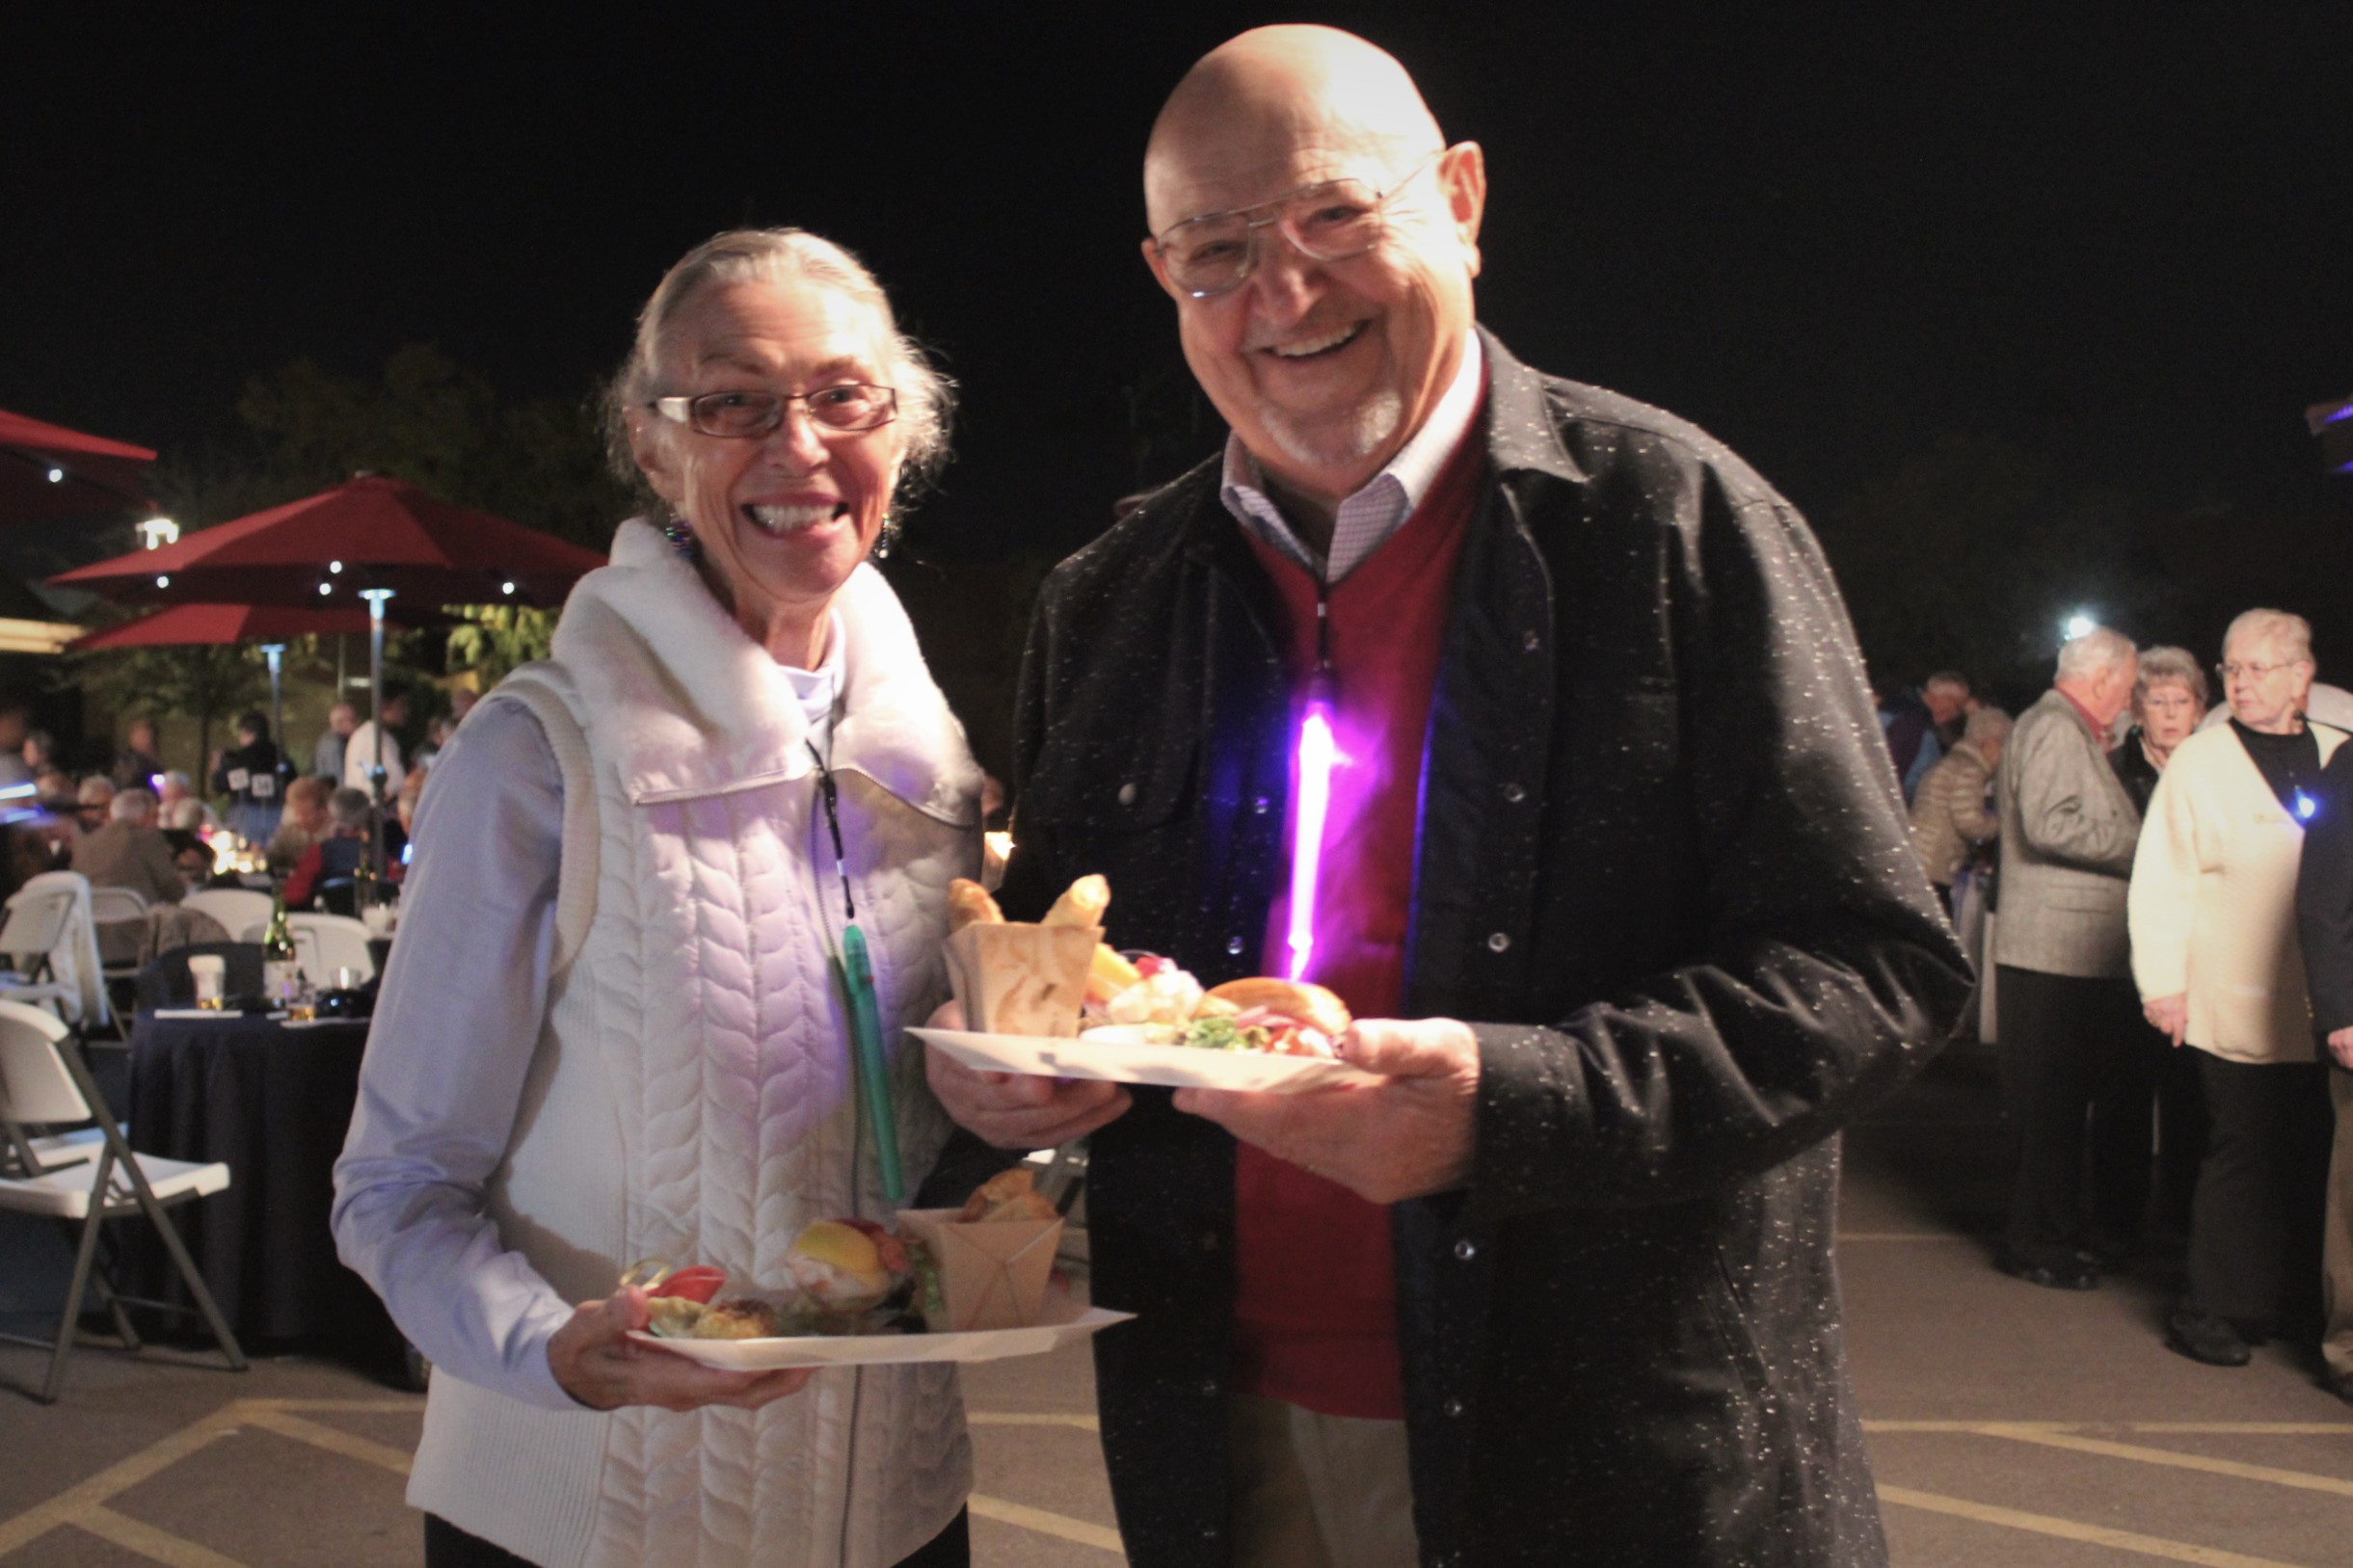 Royal Oaks 35th Anniversary Celebrated in Style